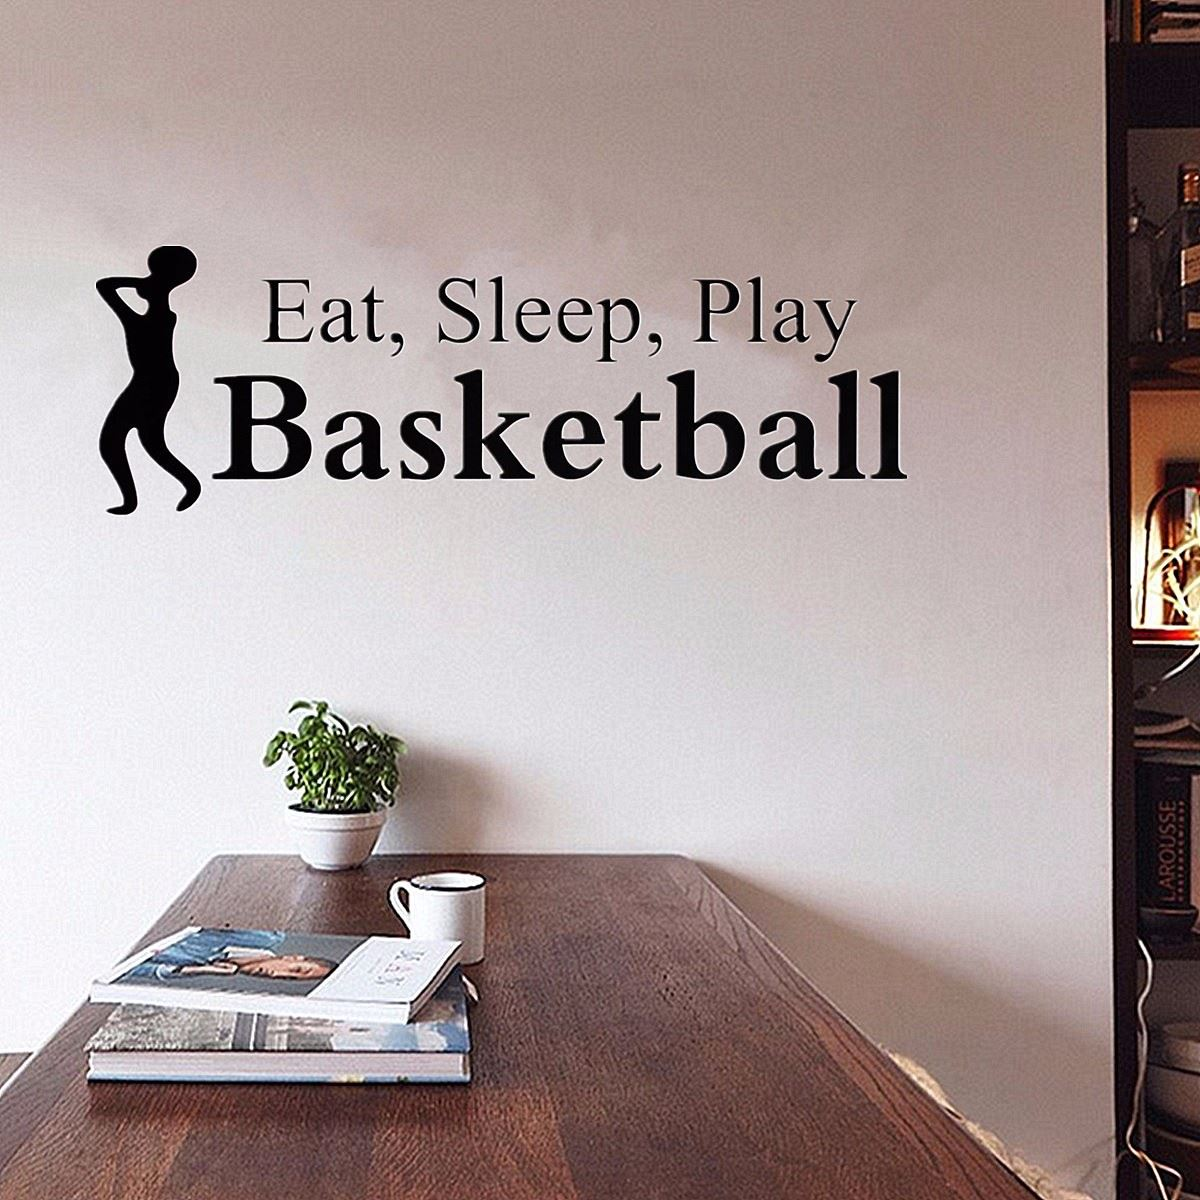 Vinyl lettering decals for crafts - Eat Sleep Play Basketball Letter Wall Mirror Sticker Art Vinyl Decal Home Kids Room Shop Decoration